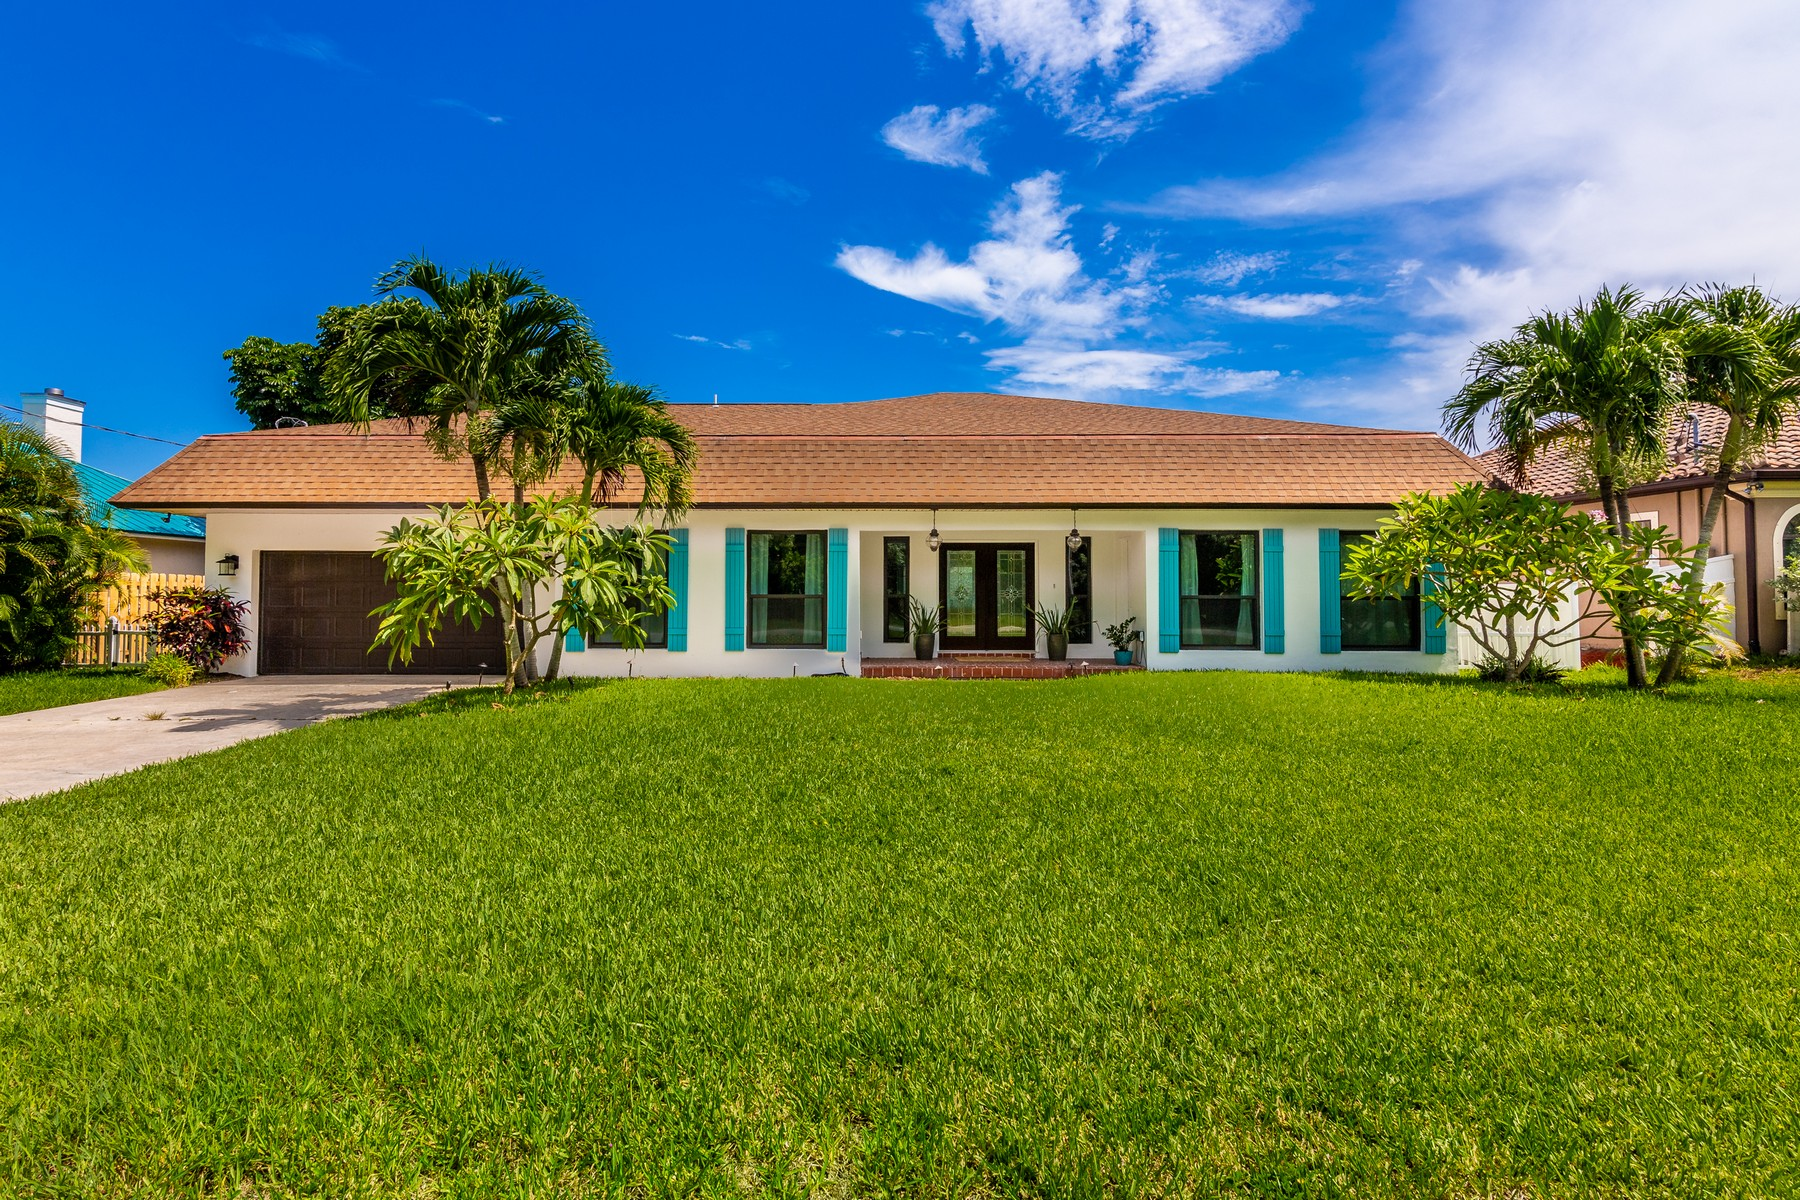 Single Family Homes for Sale at Sunnyland Beach 256 Beverly Court Melbourne Beach, Florida 32951 United States